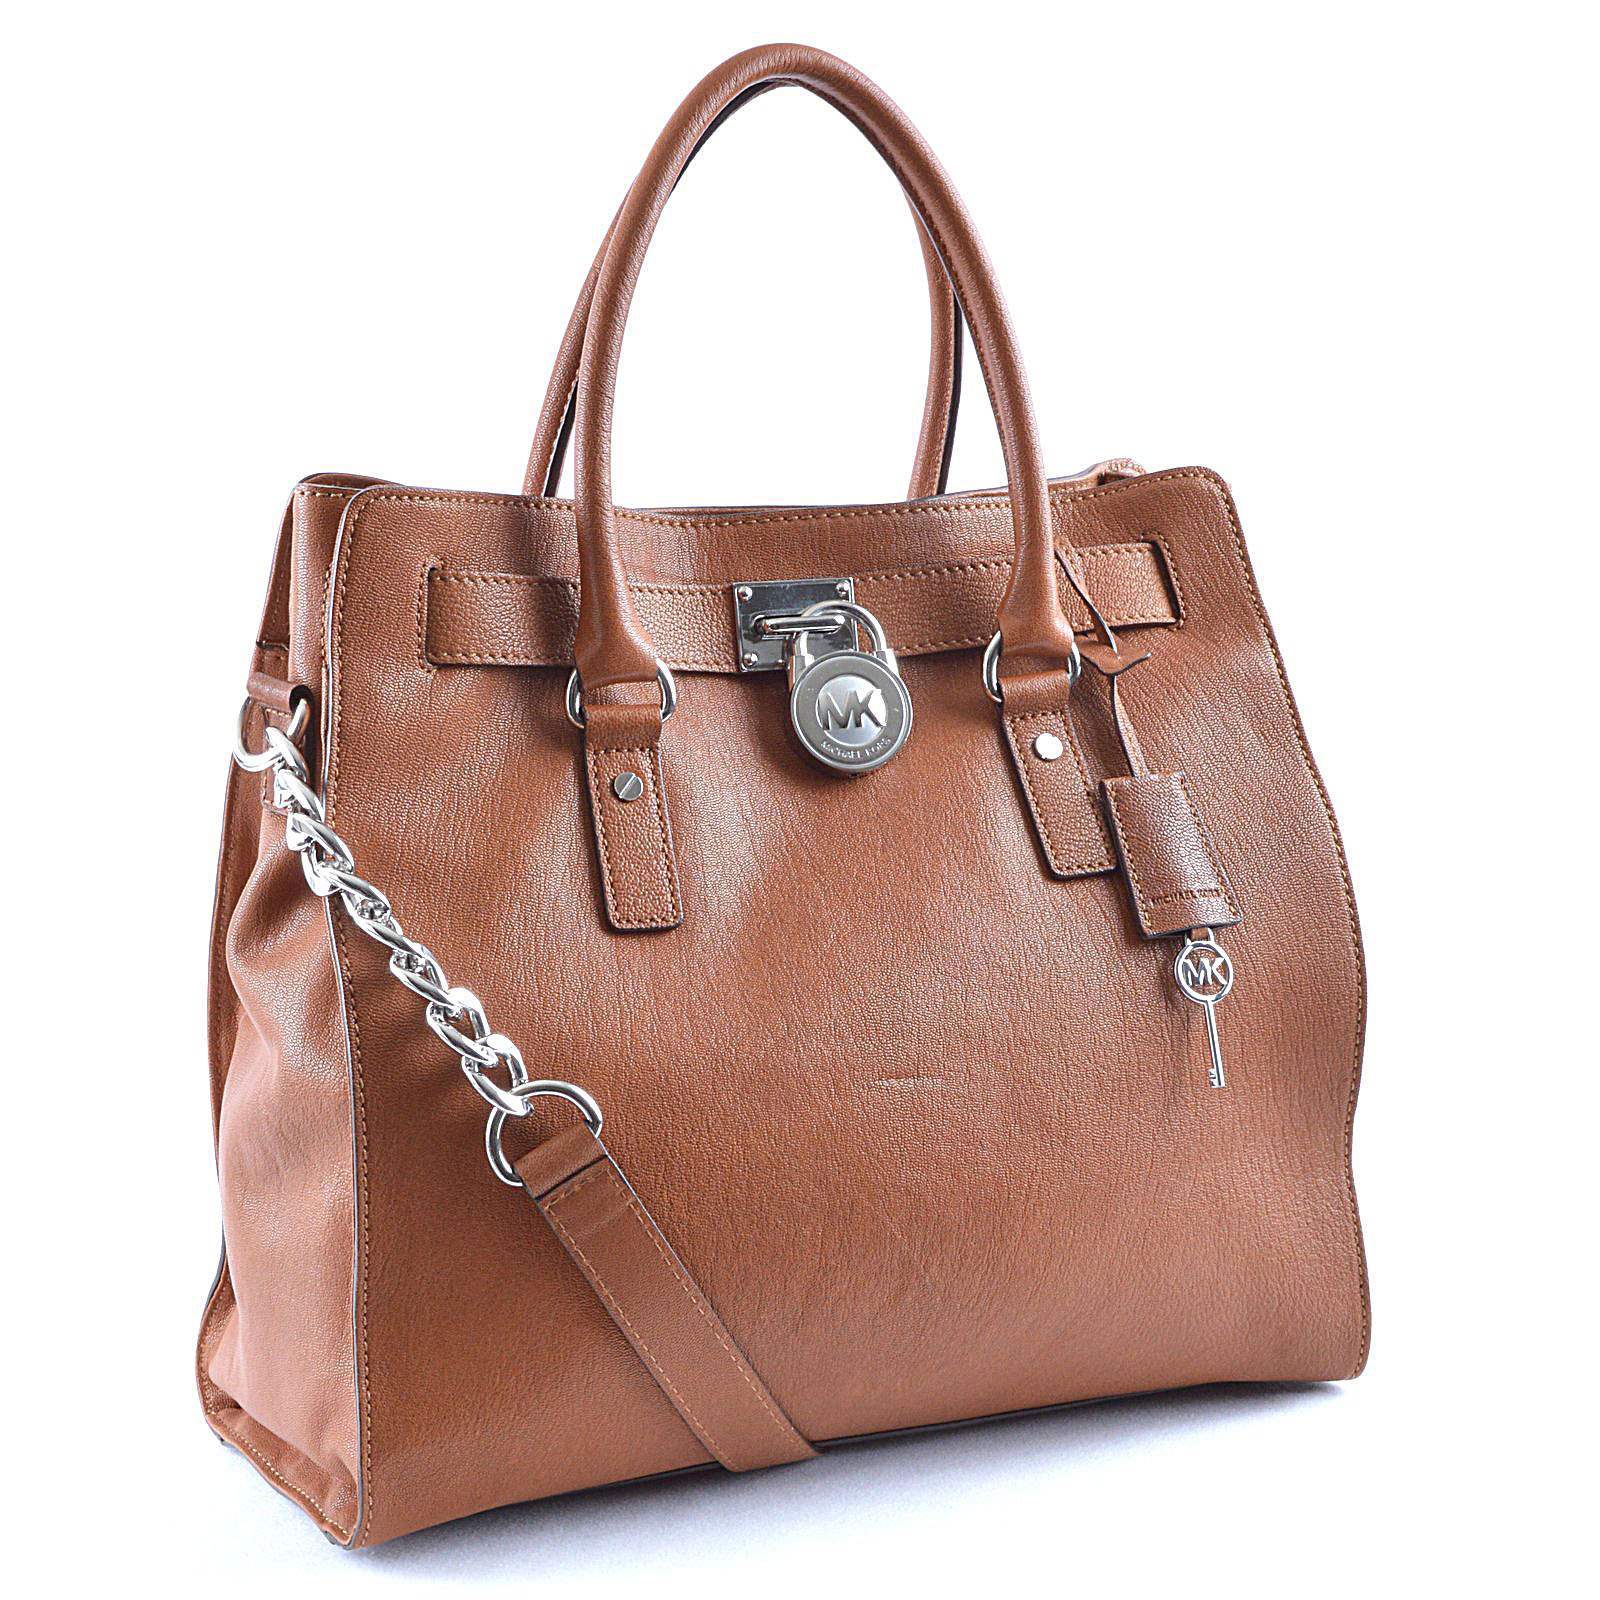 Stylish handbags designer handbags by michael kors for Designer bad